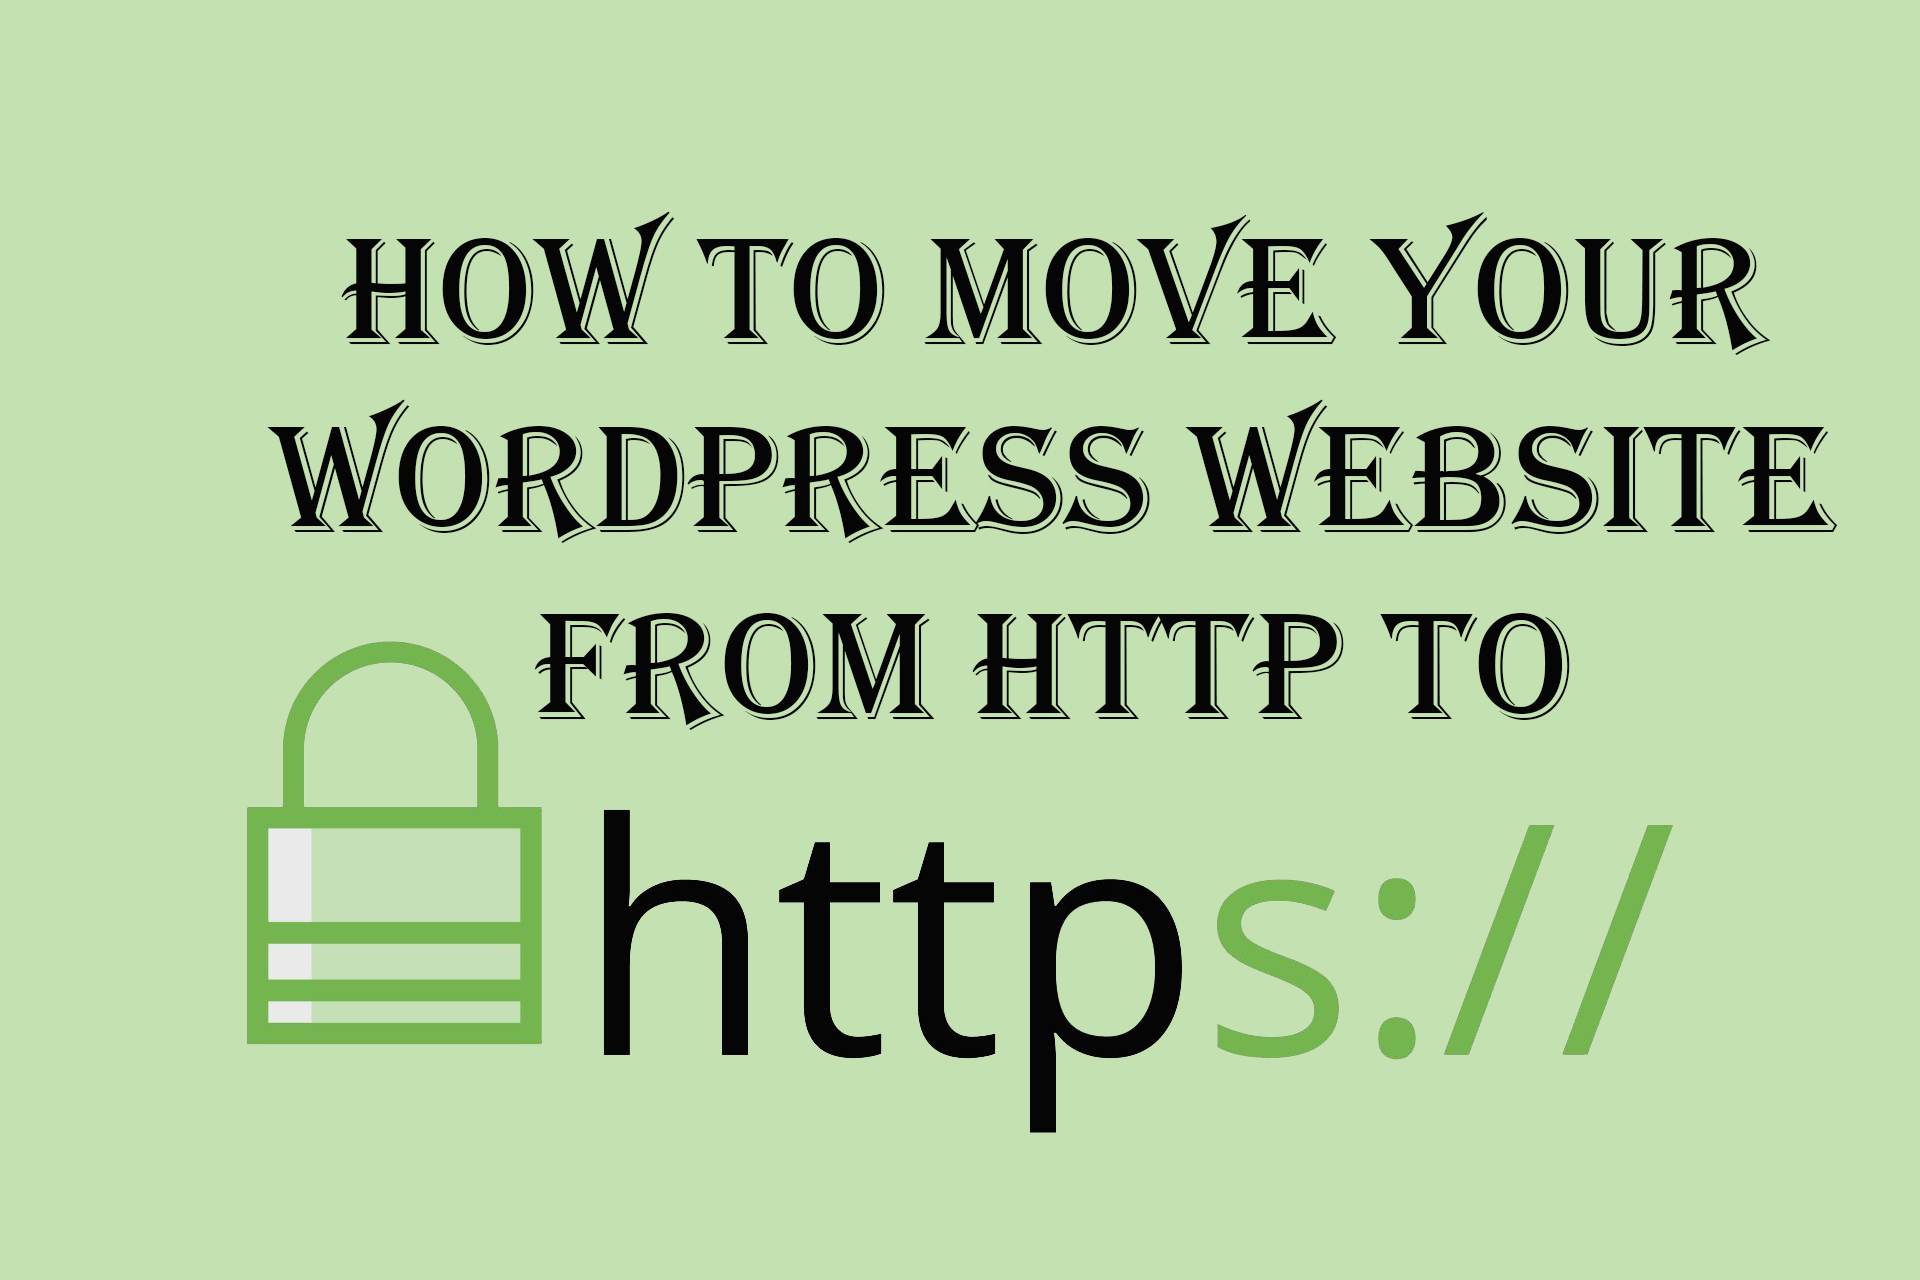 how to move your wordpress website from http to https